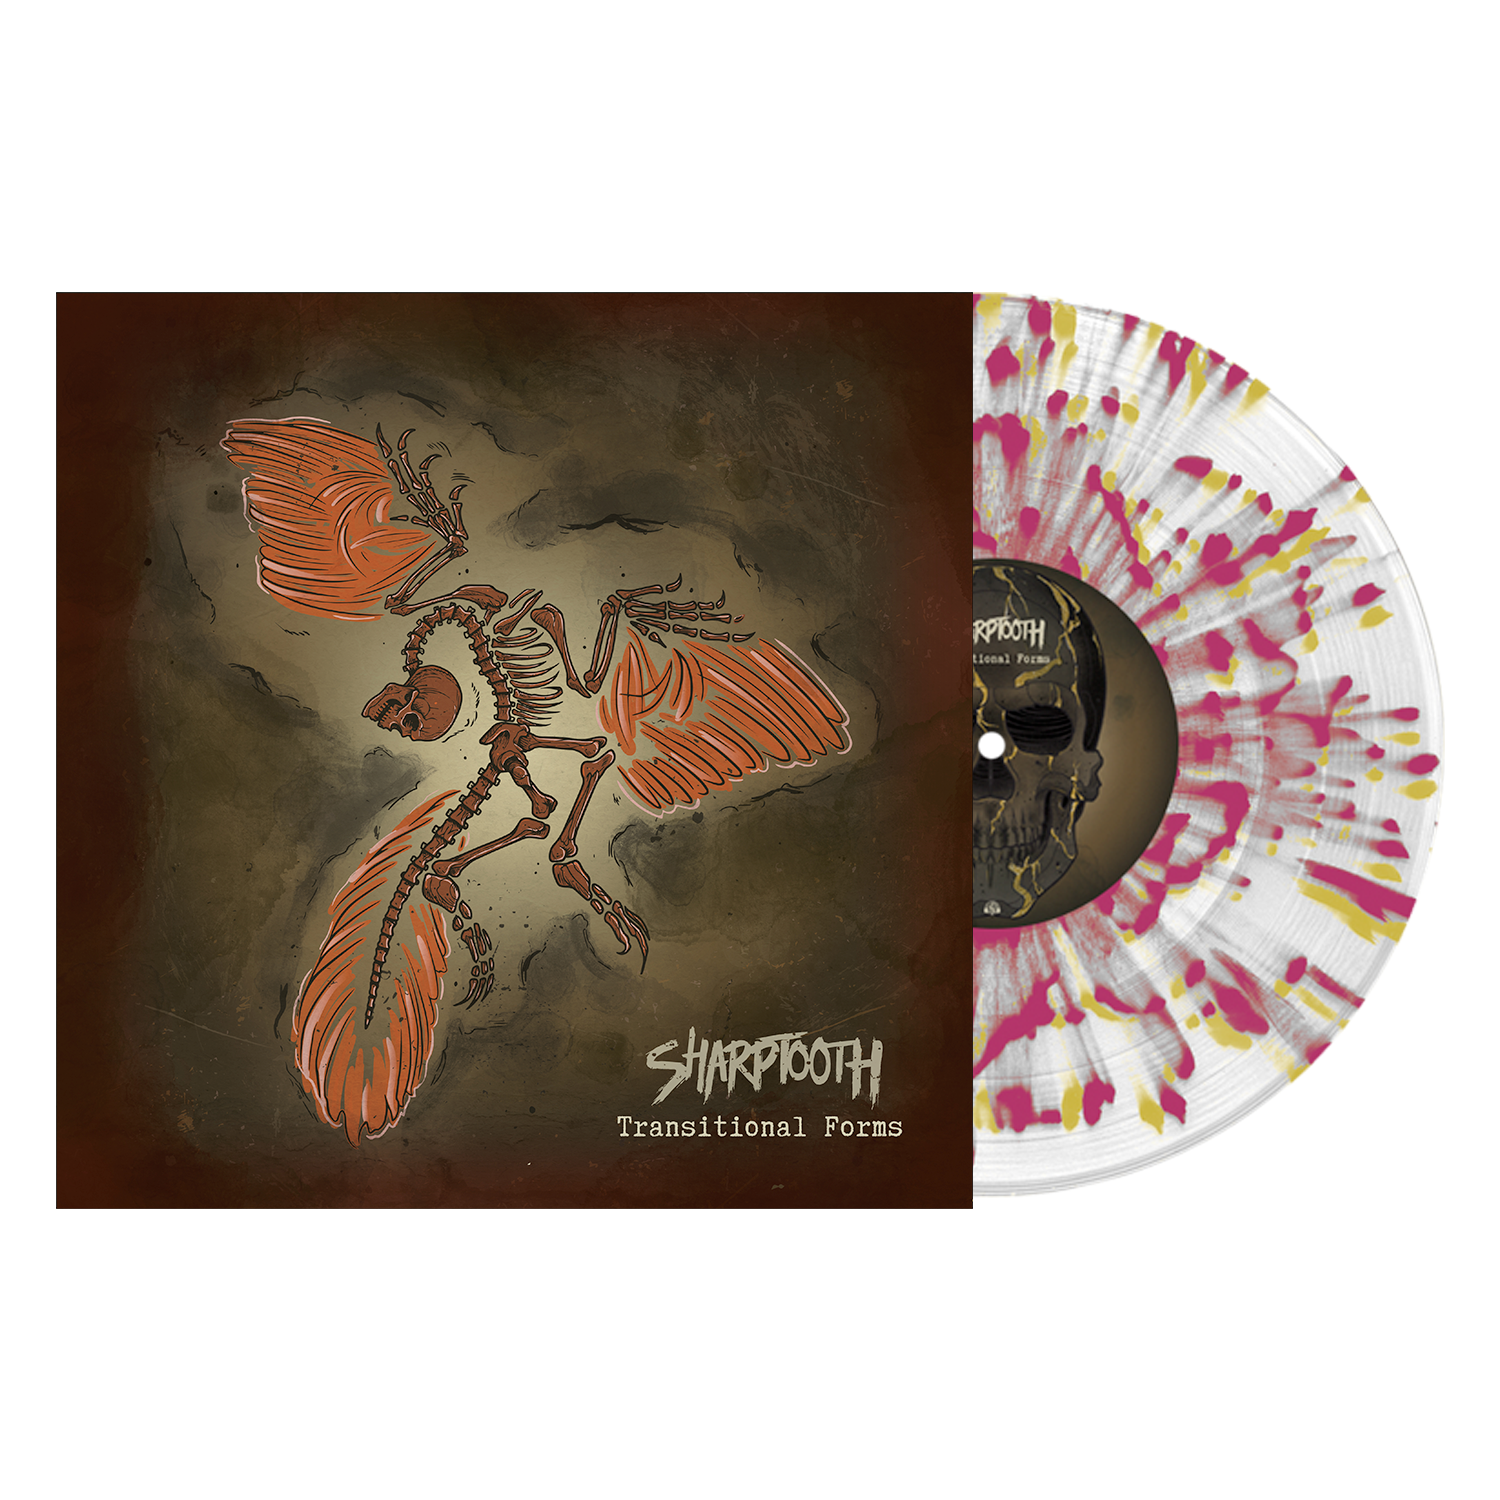 Sharptooth 'Transitional Forms' LP (Various 2 - Clear w/ heavy Oxblood and Gold splatter)